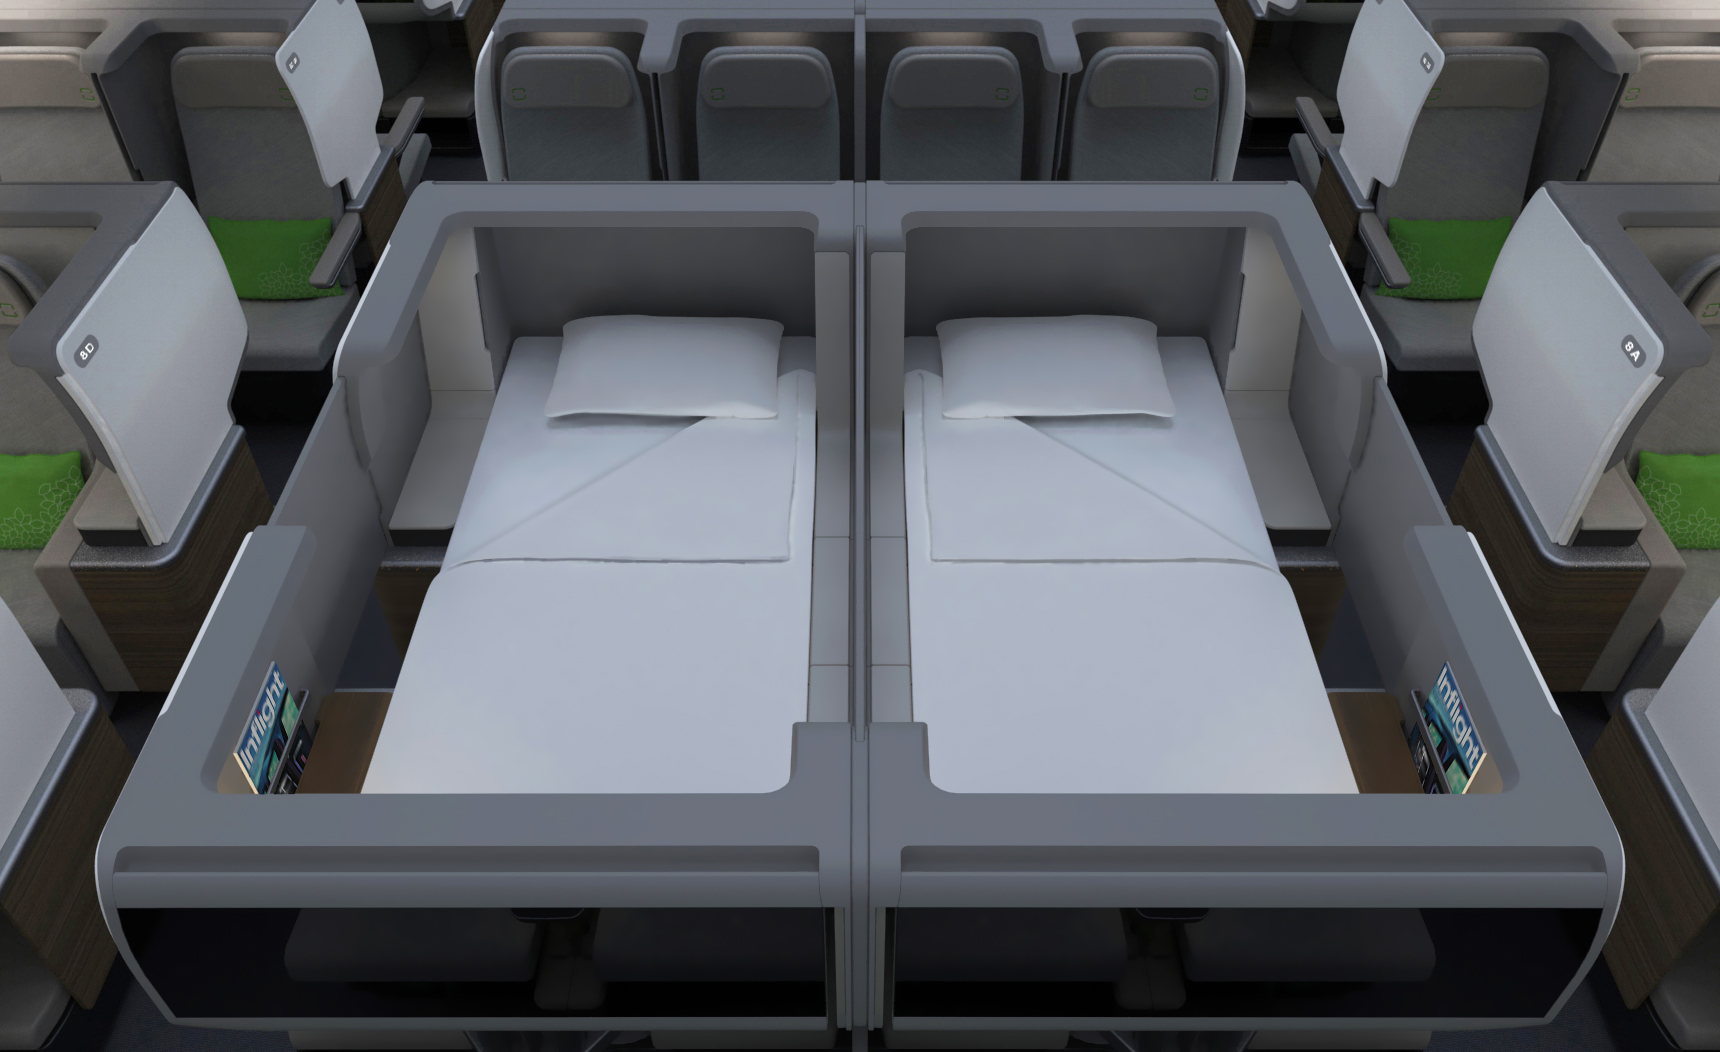 Formation_Design_Group_concept_seat-cabin-2suites-double-bed.jpg